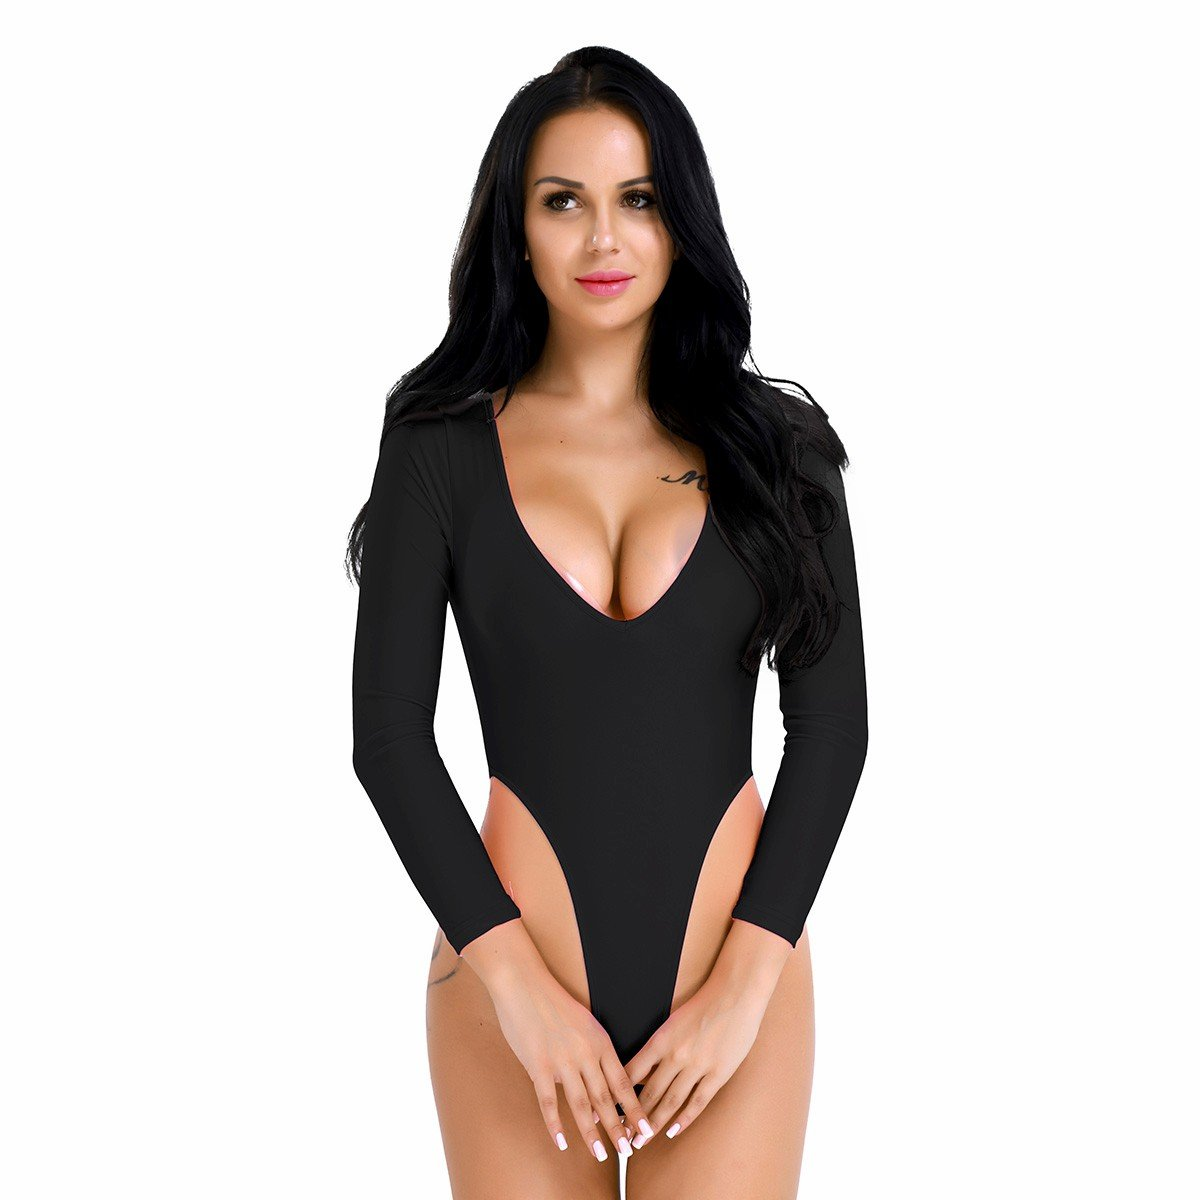 364059d3d80 iiniim Women's Long Sleeve High Cut Thong Leotard Crotchless Lingerie  Bodysuit